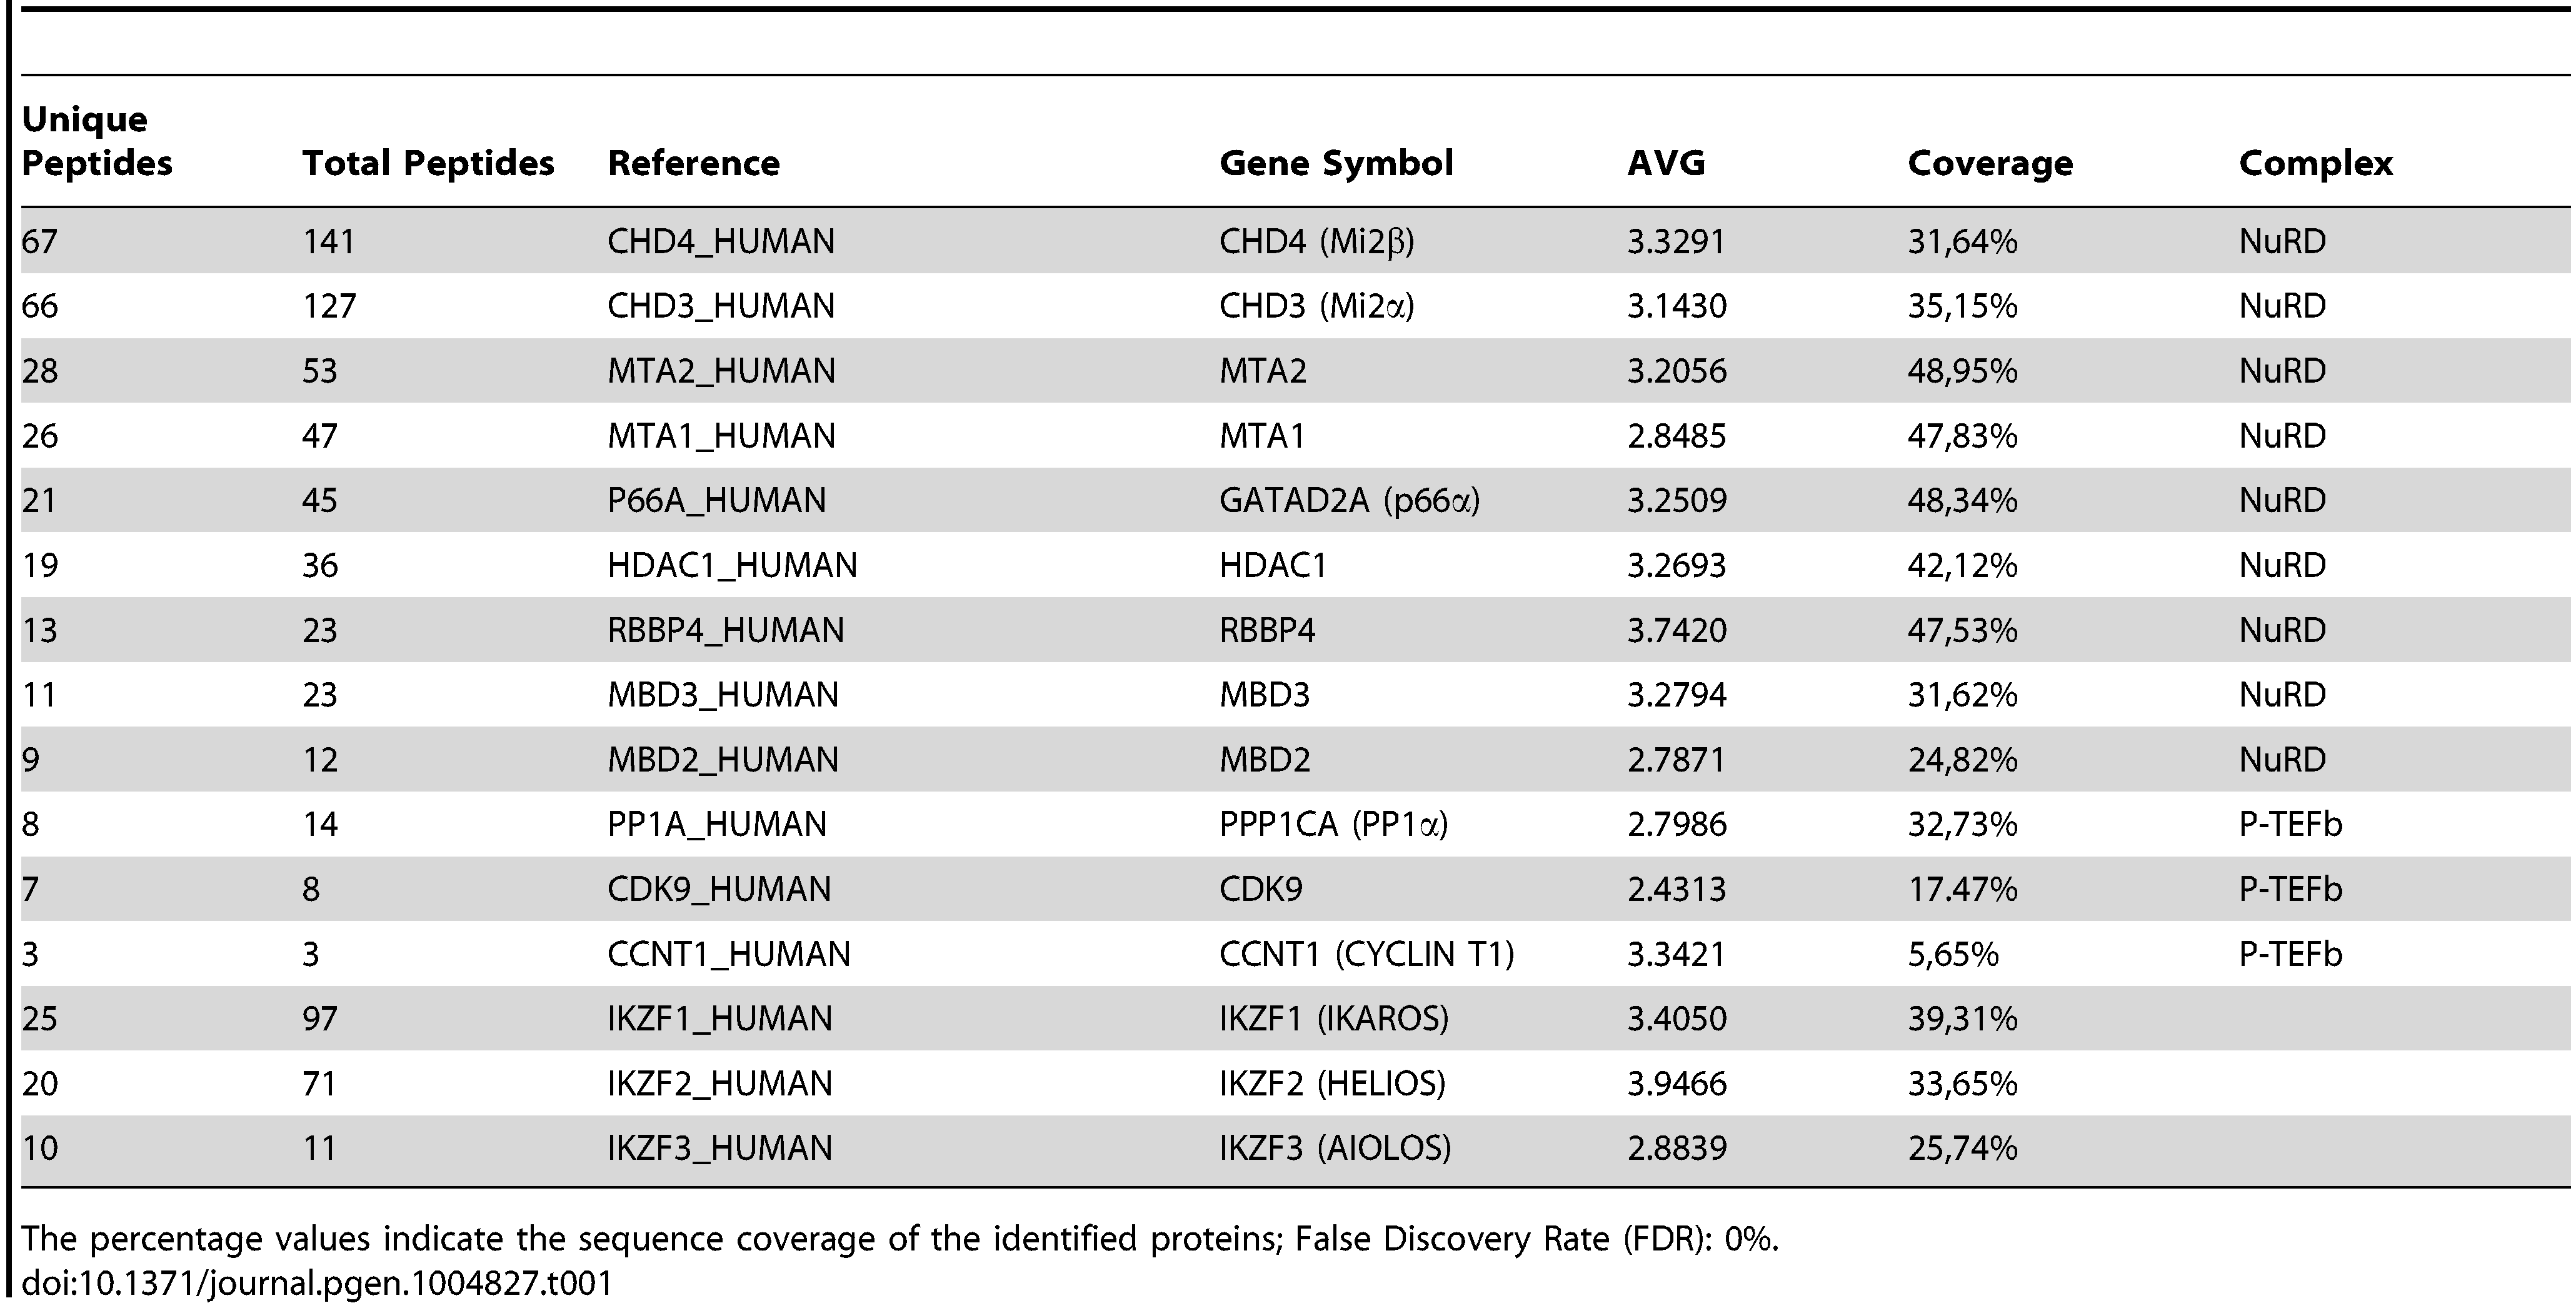 Immunoaffinity purification of Flag-HA-IKAROS complexes from Jurkat cells and their identification by LC-MS/MS analysis.